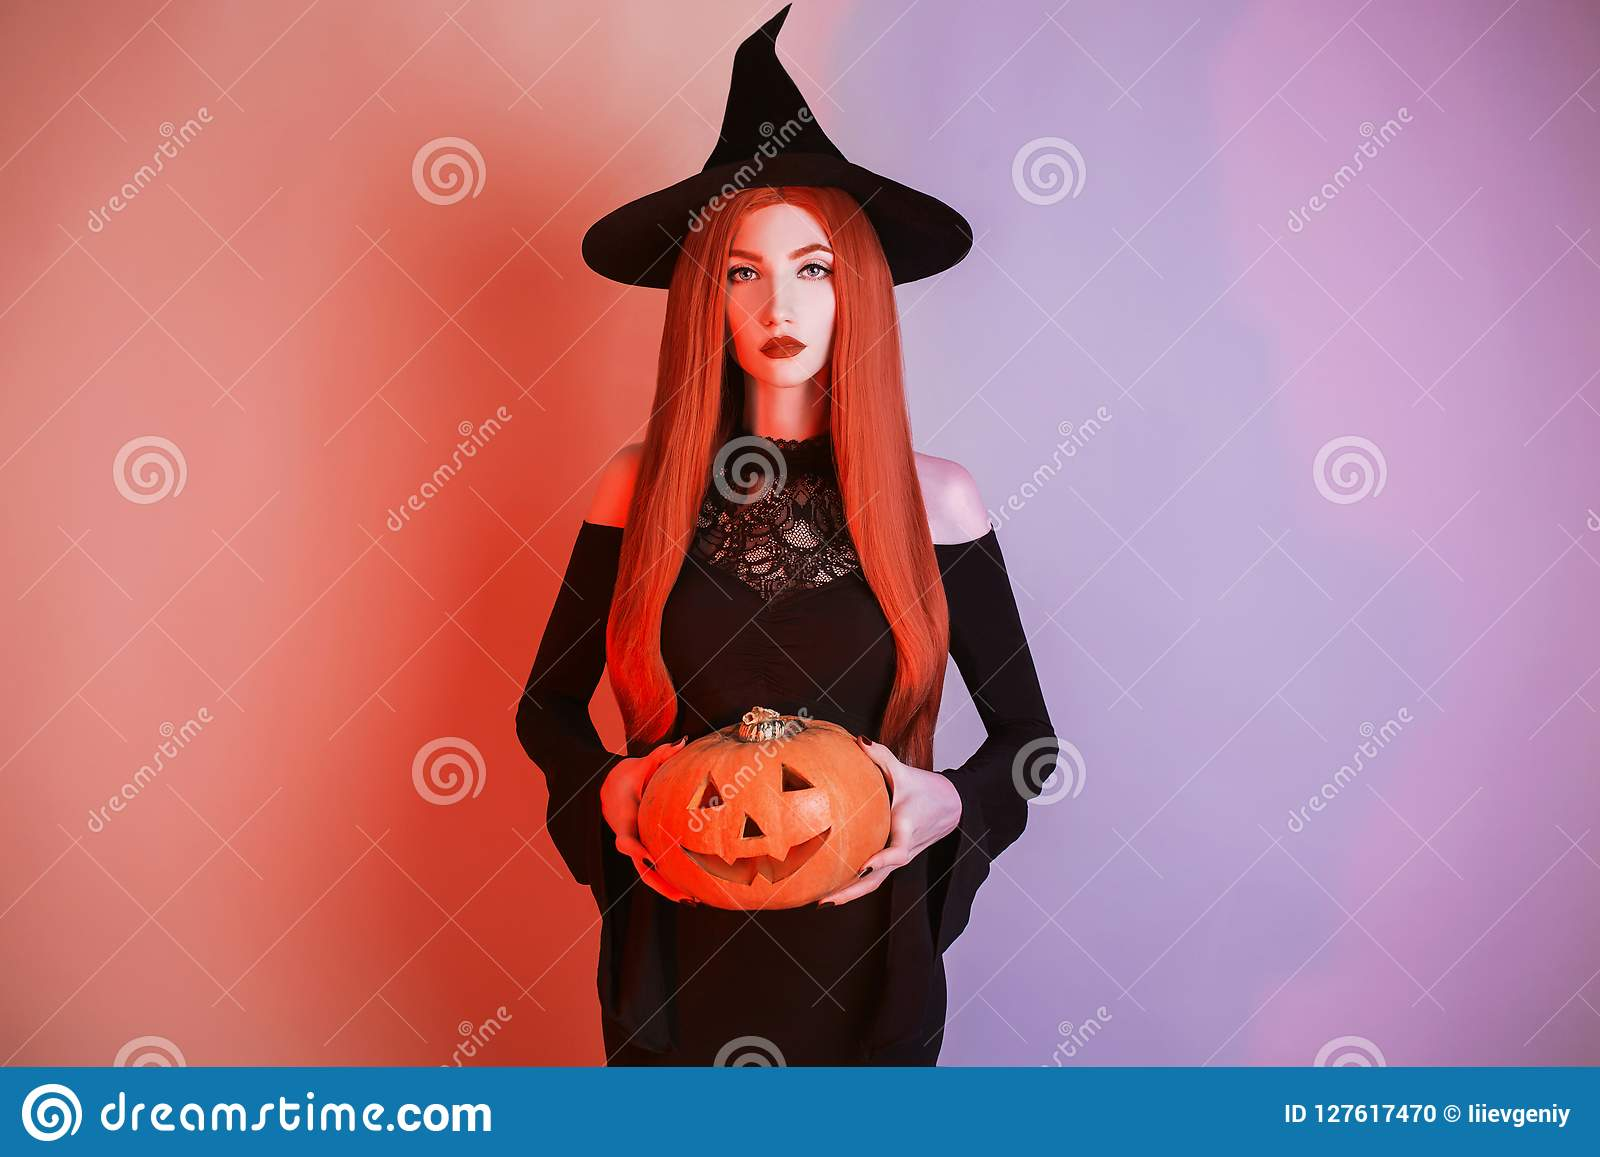 Enchanting halloween costume. Gothic woman witch with pale skin and red hair in black dress holding jack pumpkin. Girl witch with